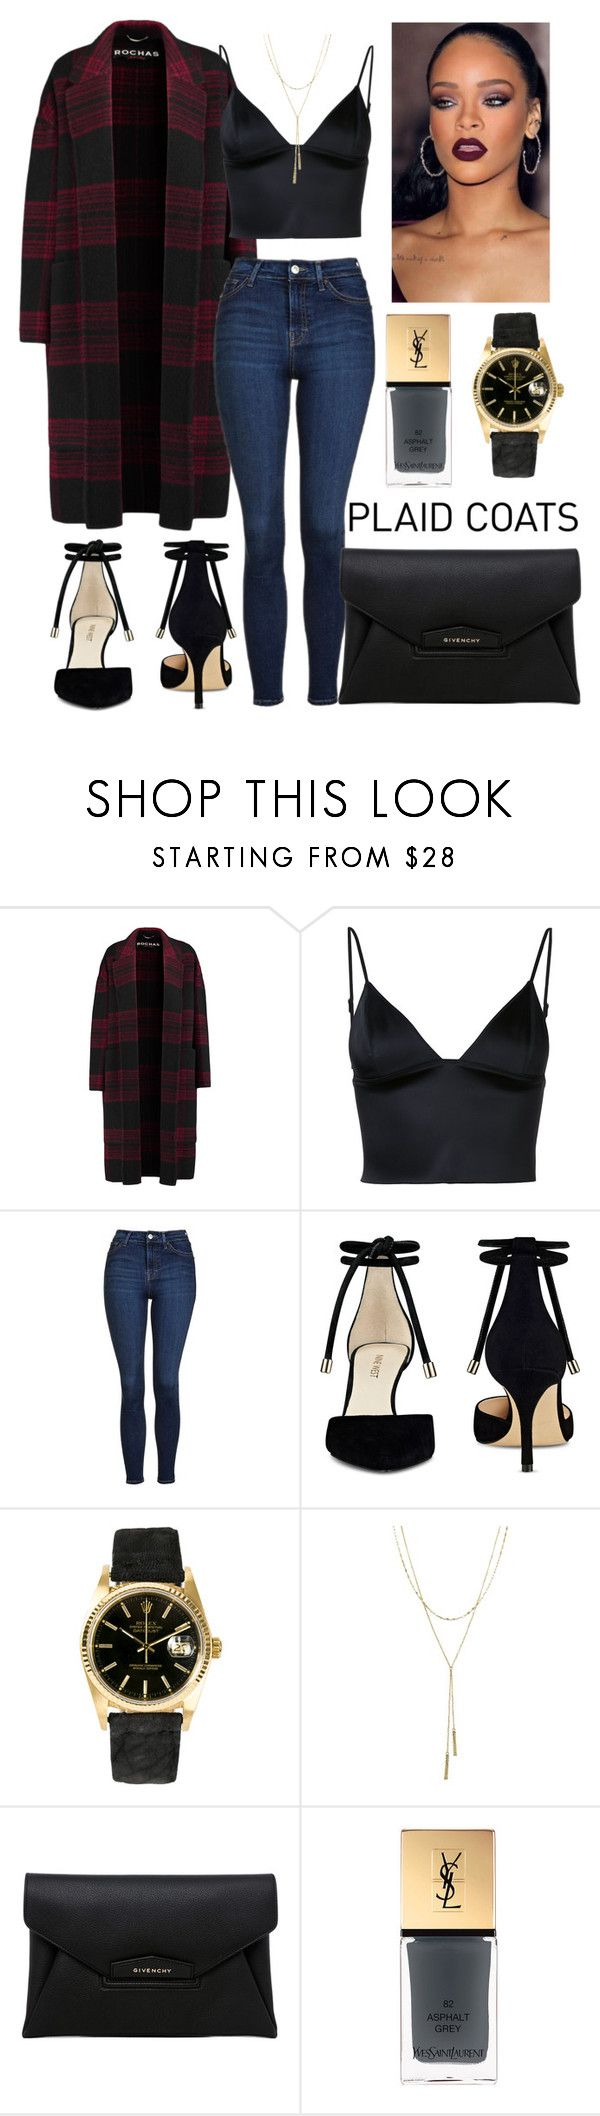 """Untitled #216"" by c-ayannah ❤ liked on Polyvore featuring Rochas, T By Alexander Wang, Topshop, Nine West, Rolex, Bloomingdale's, Givenchy and Yves Saint Laurent"